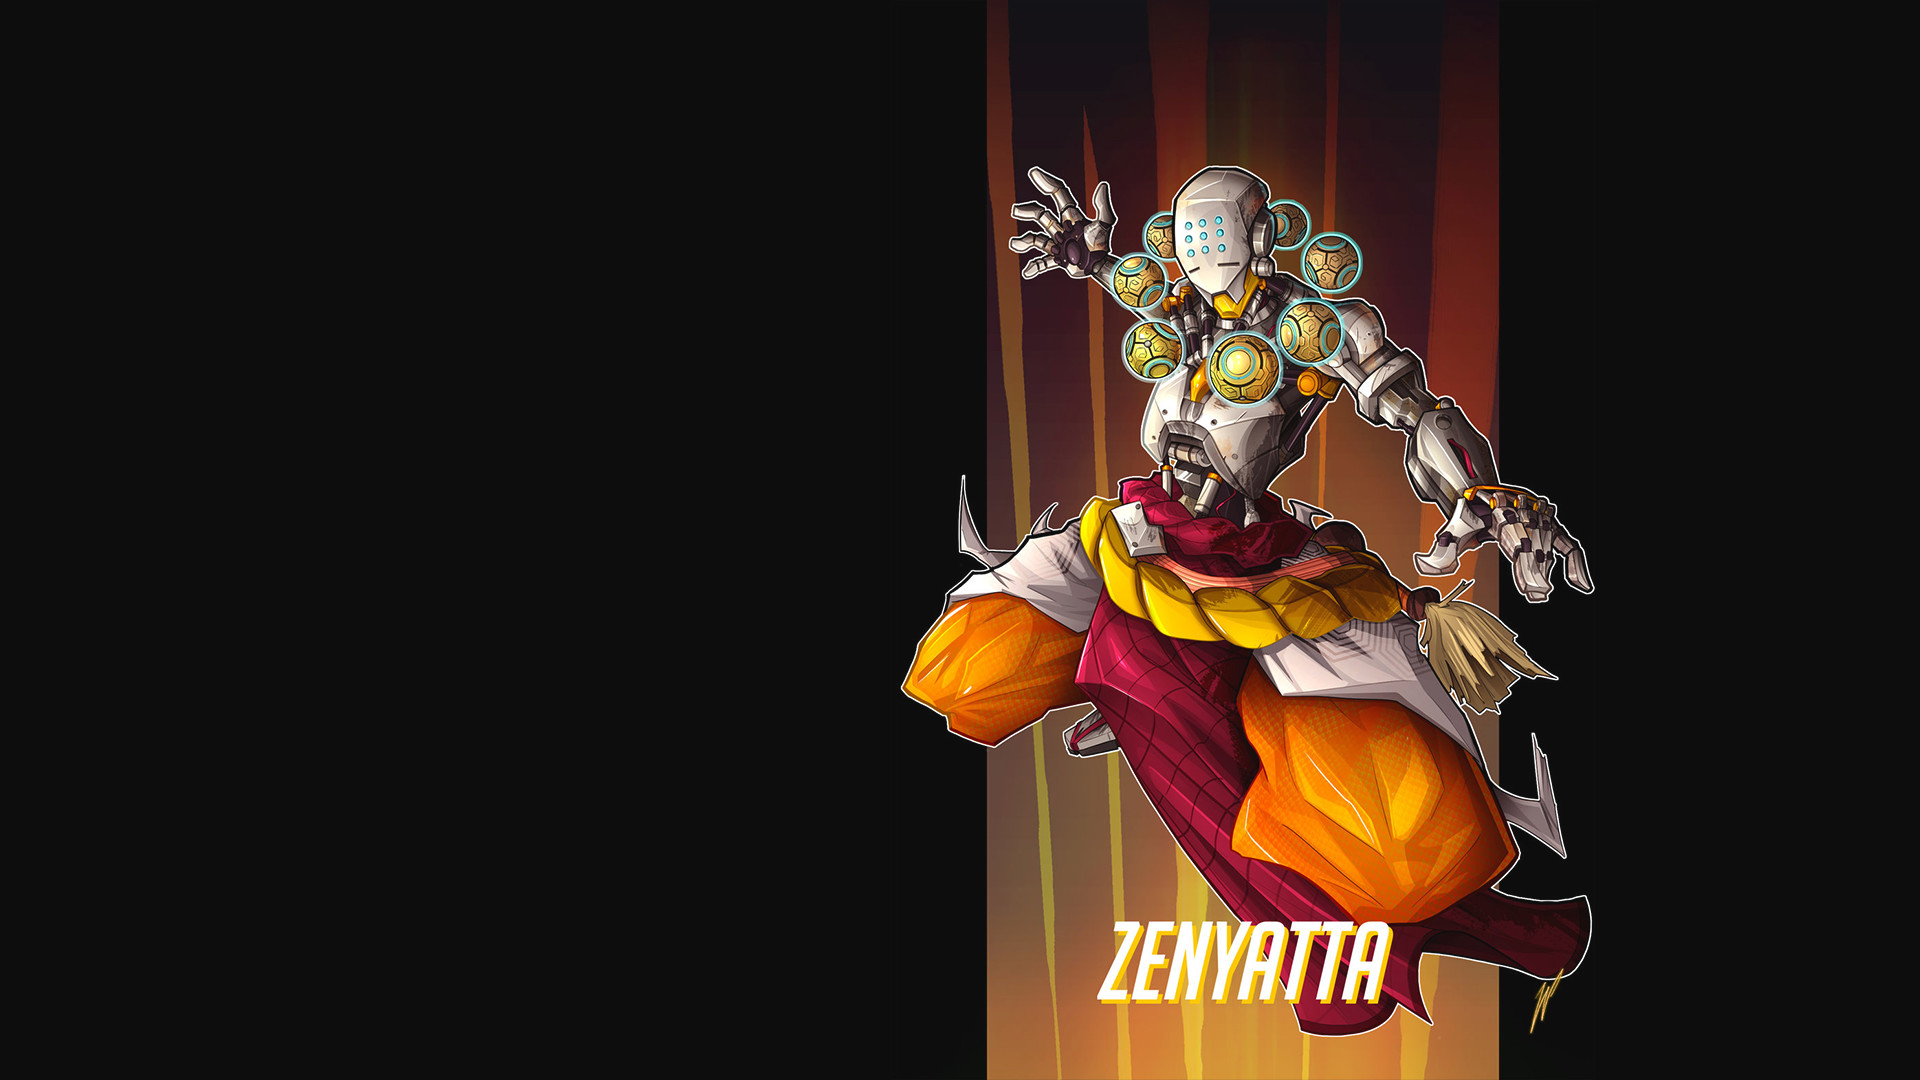 1920x1080 Zenyatta wallpaper by Puekkers